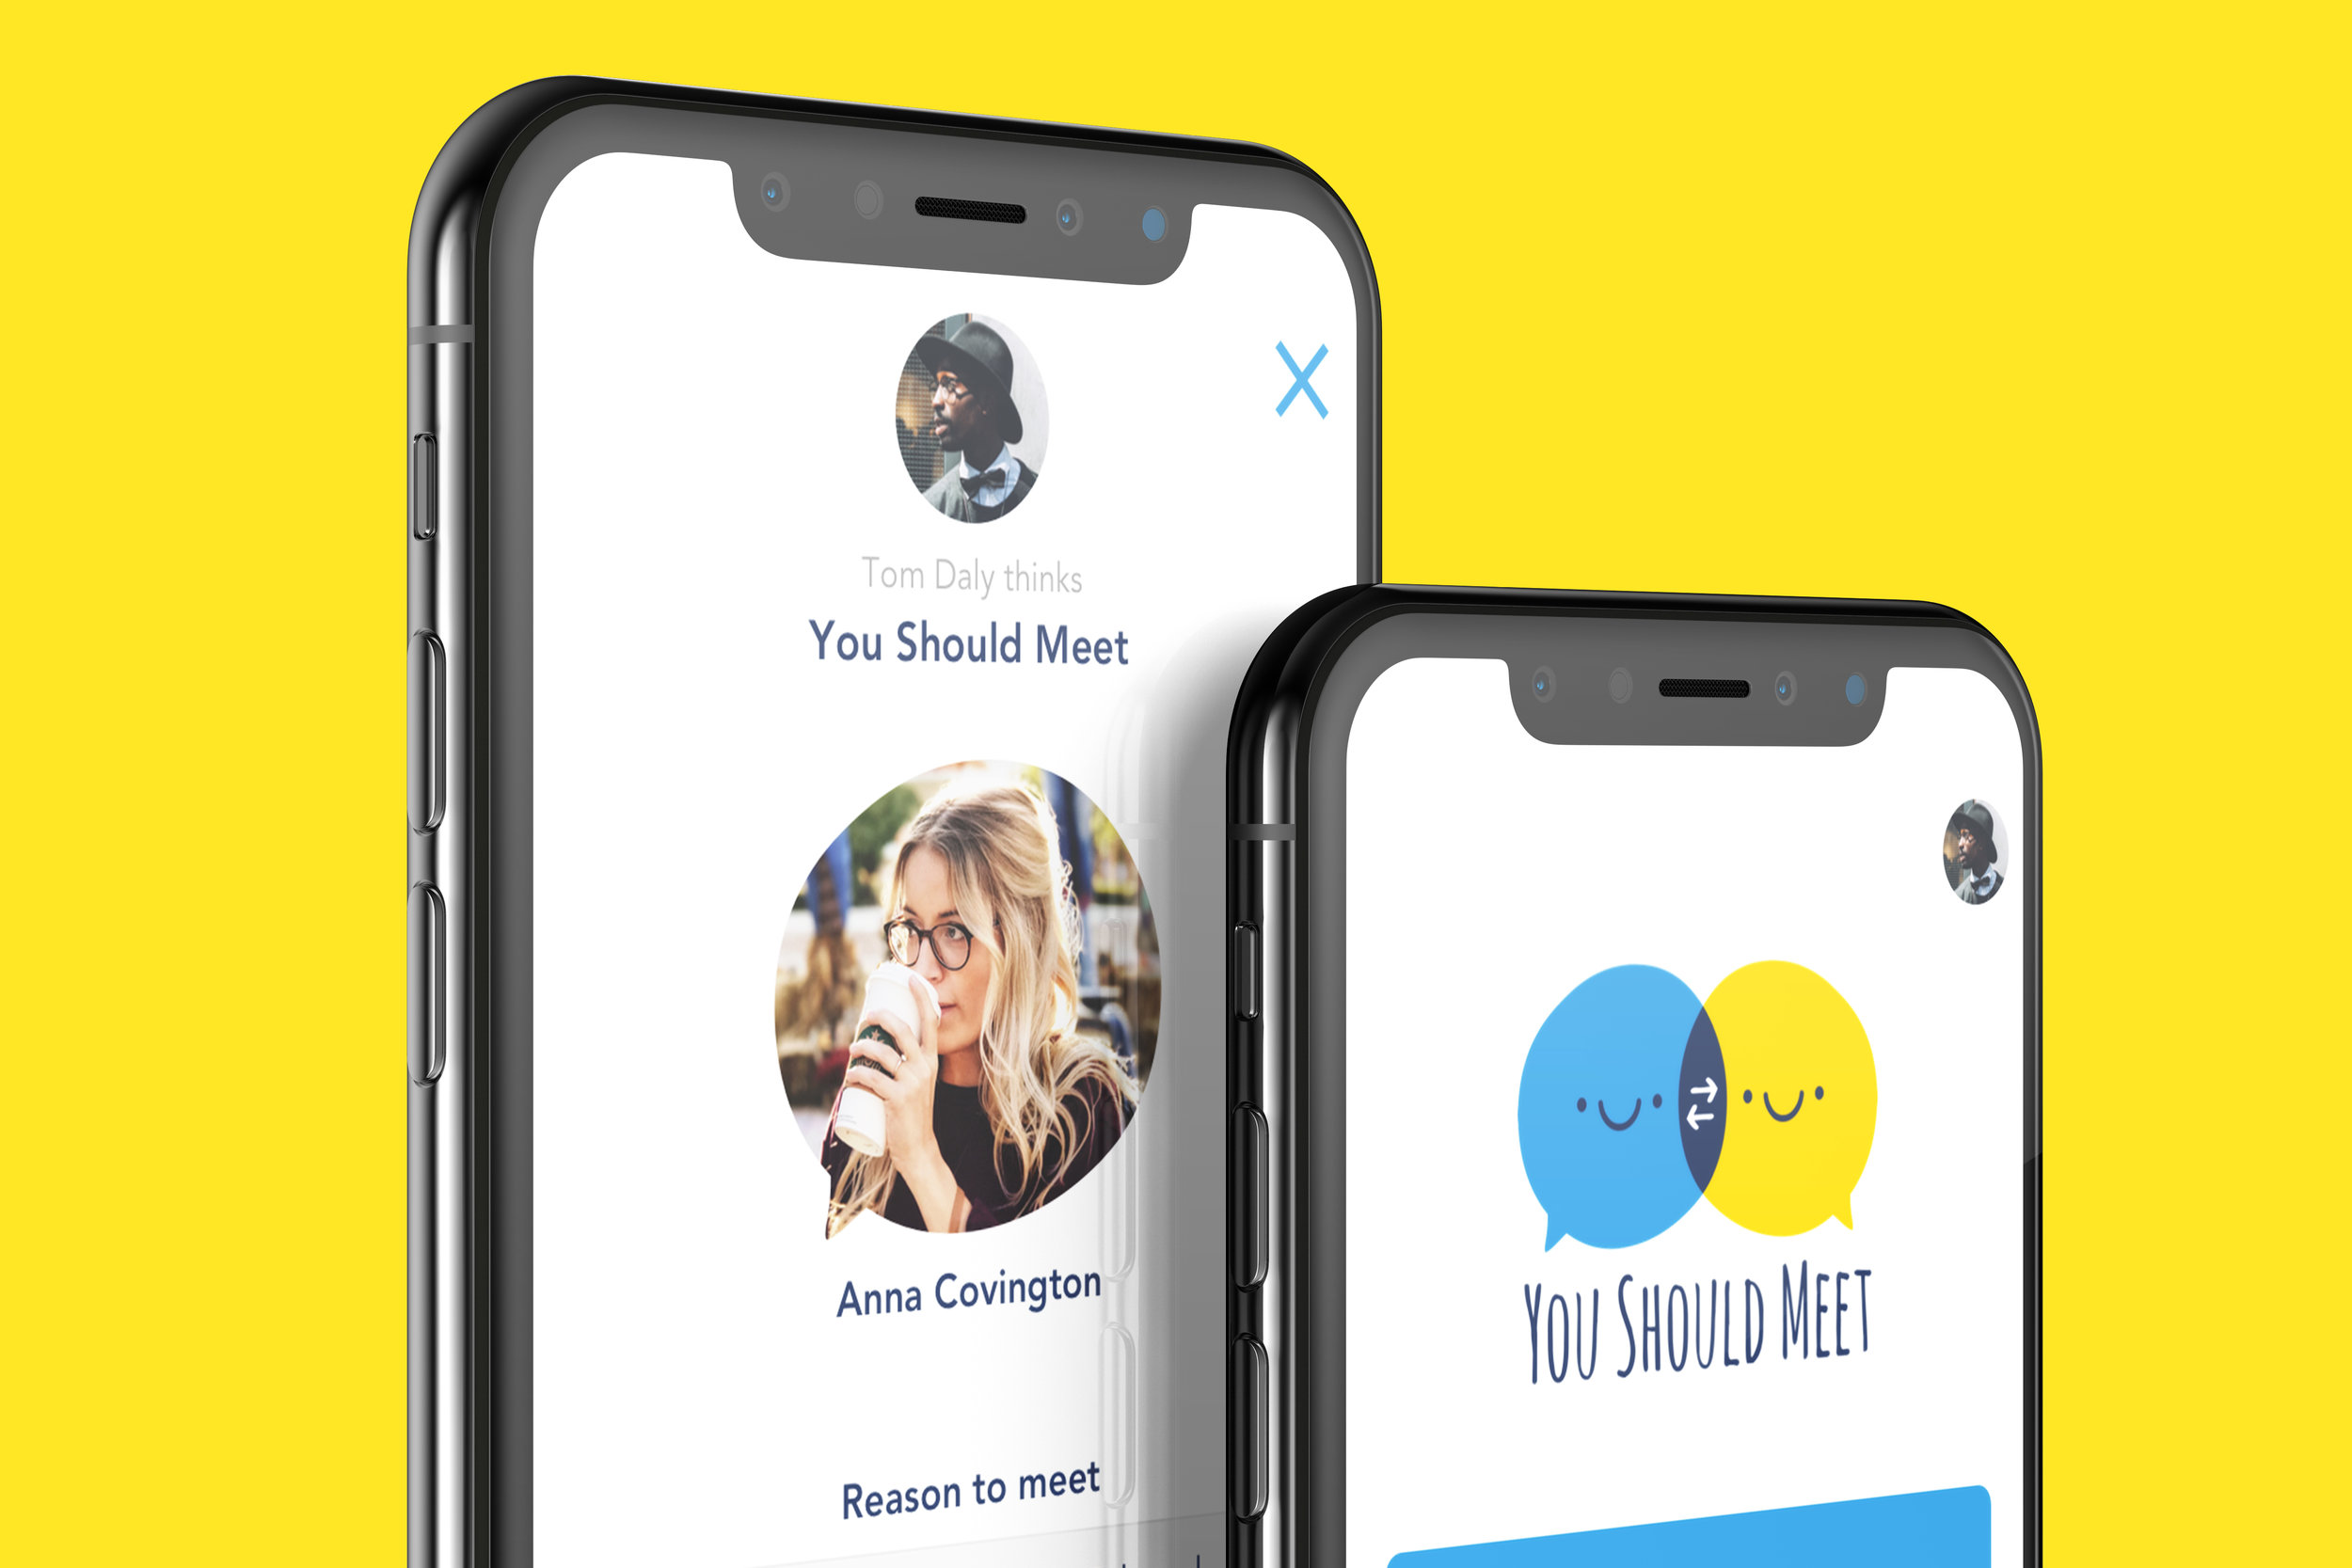 you-should-meet-iphone-android-apps-yellow.jpg